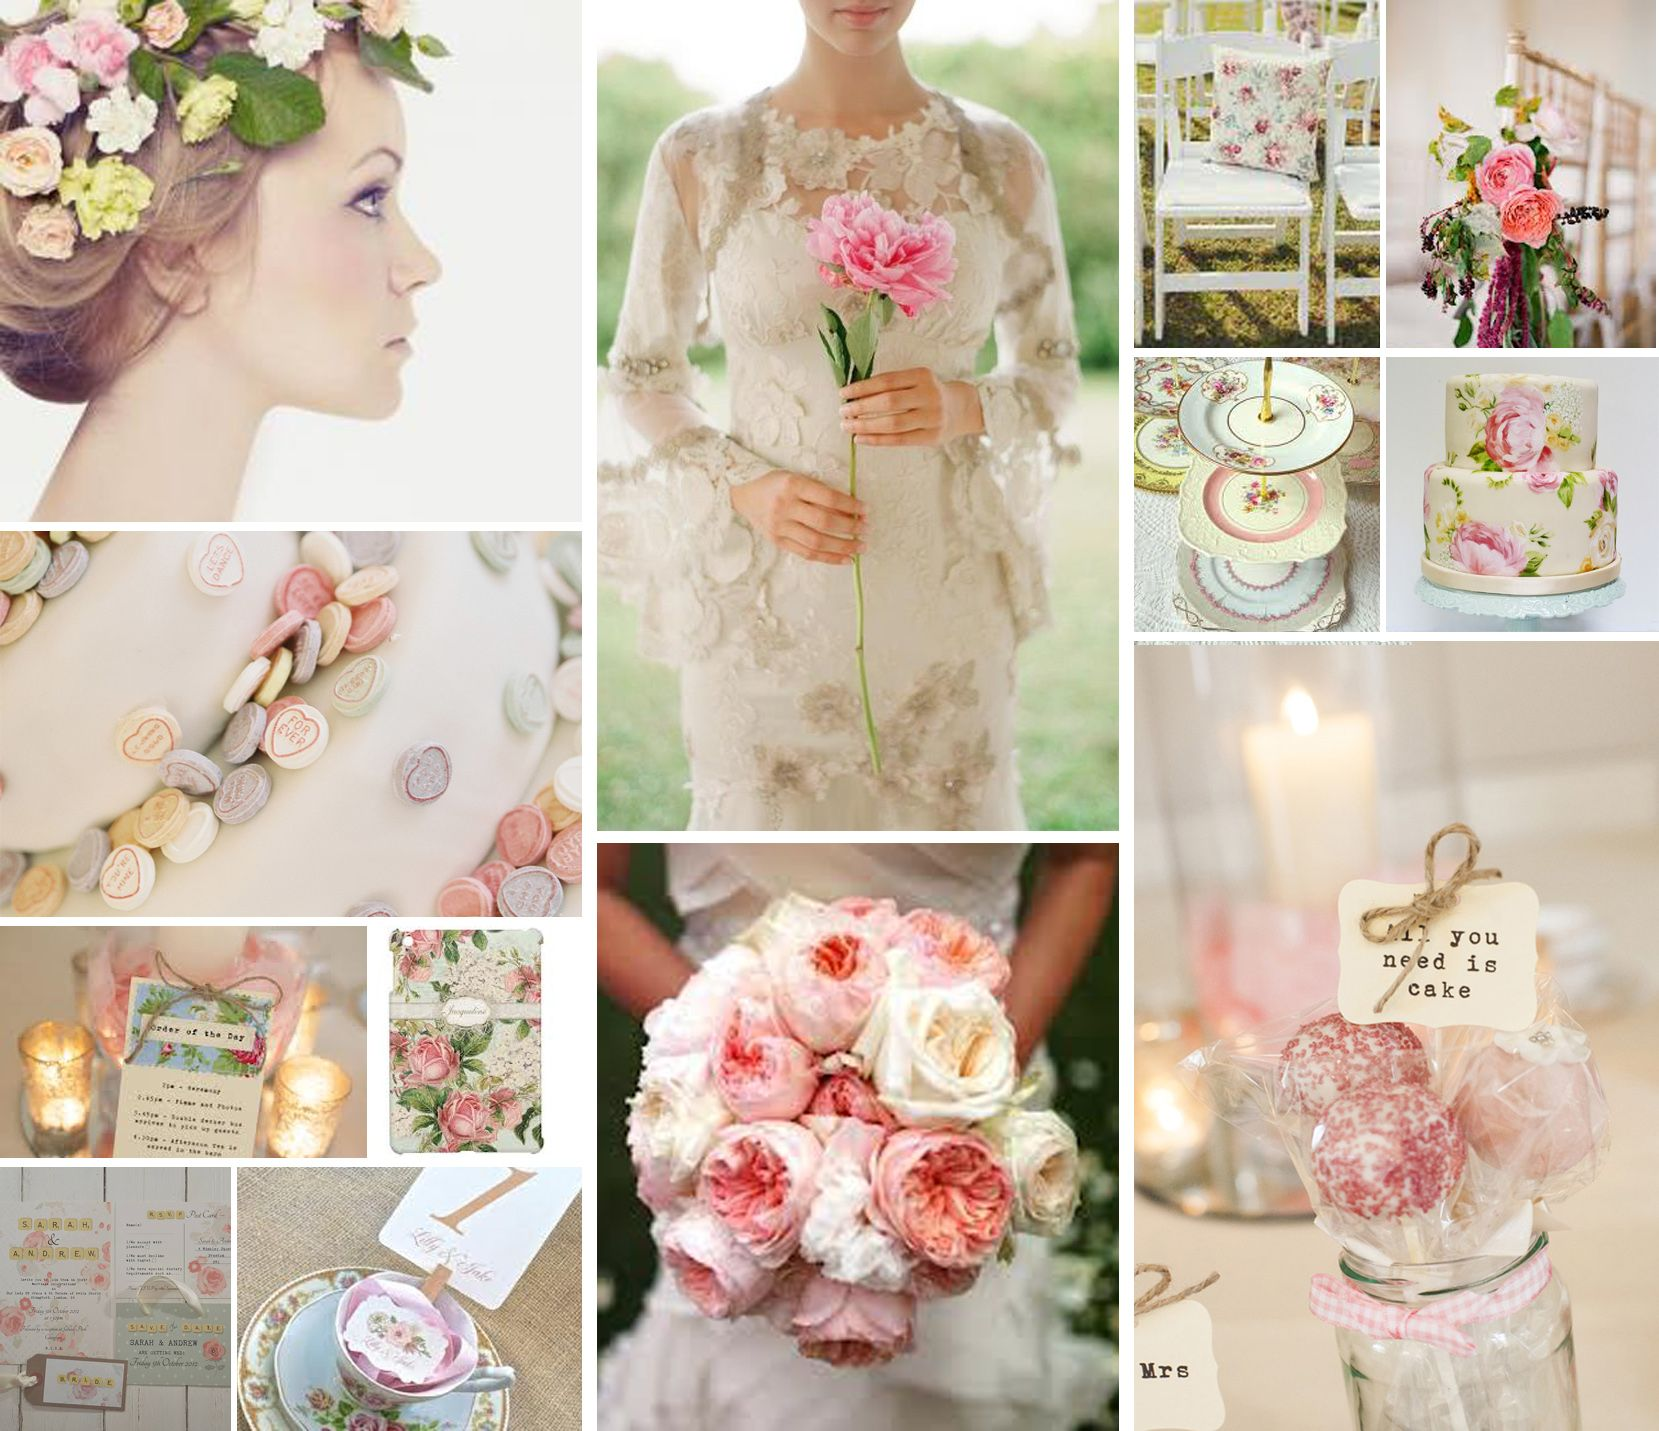 Rose Wedding Ideas: Themed Wedding Inspirations